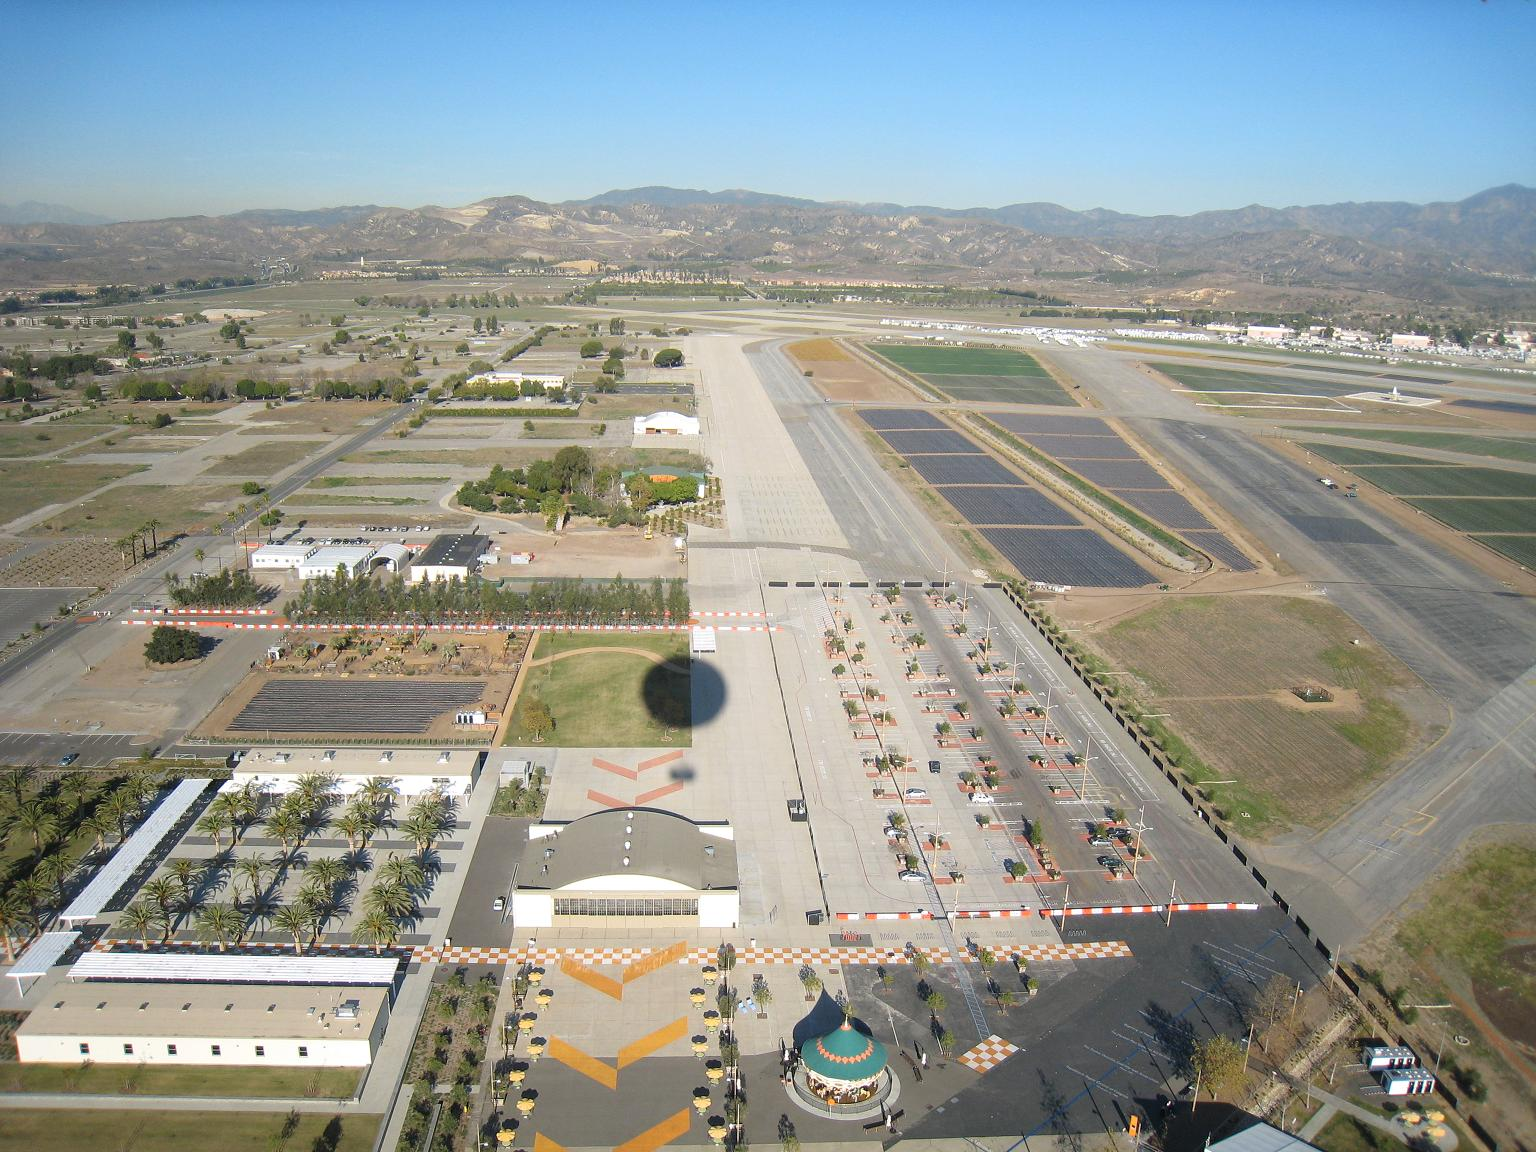 Photo of an air strip with mountains in the background.